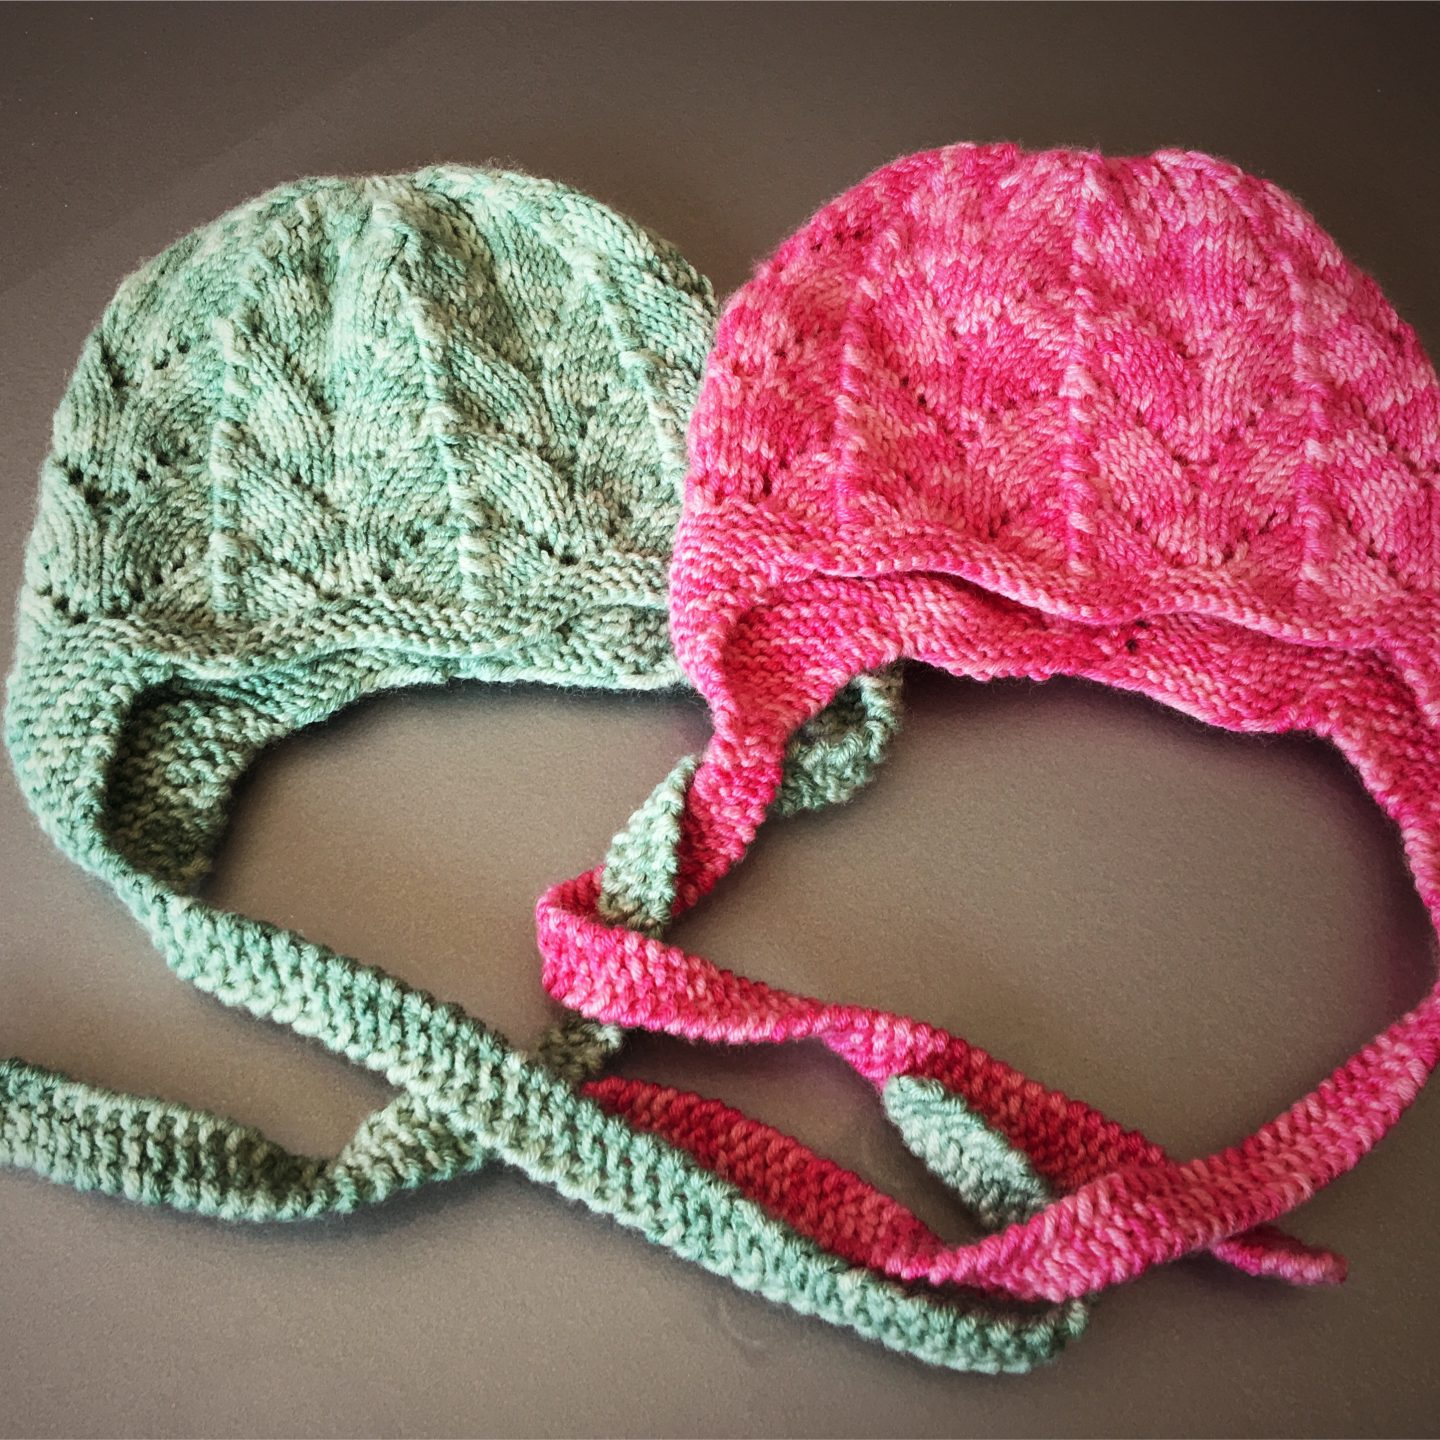 Baby bonnet knitting pattern – Easy to do!